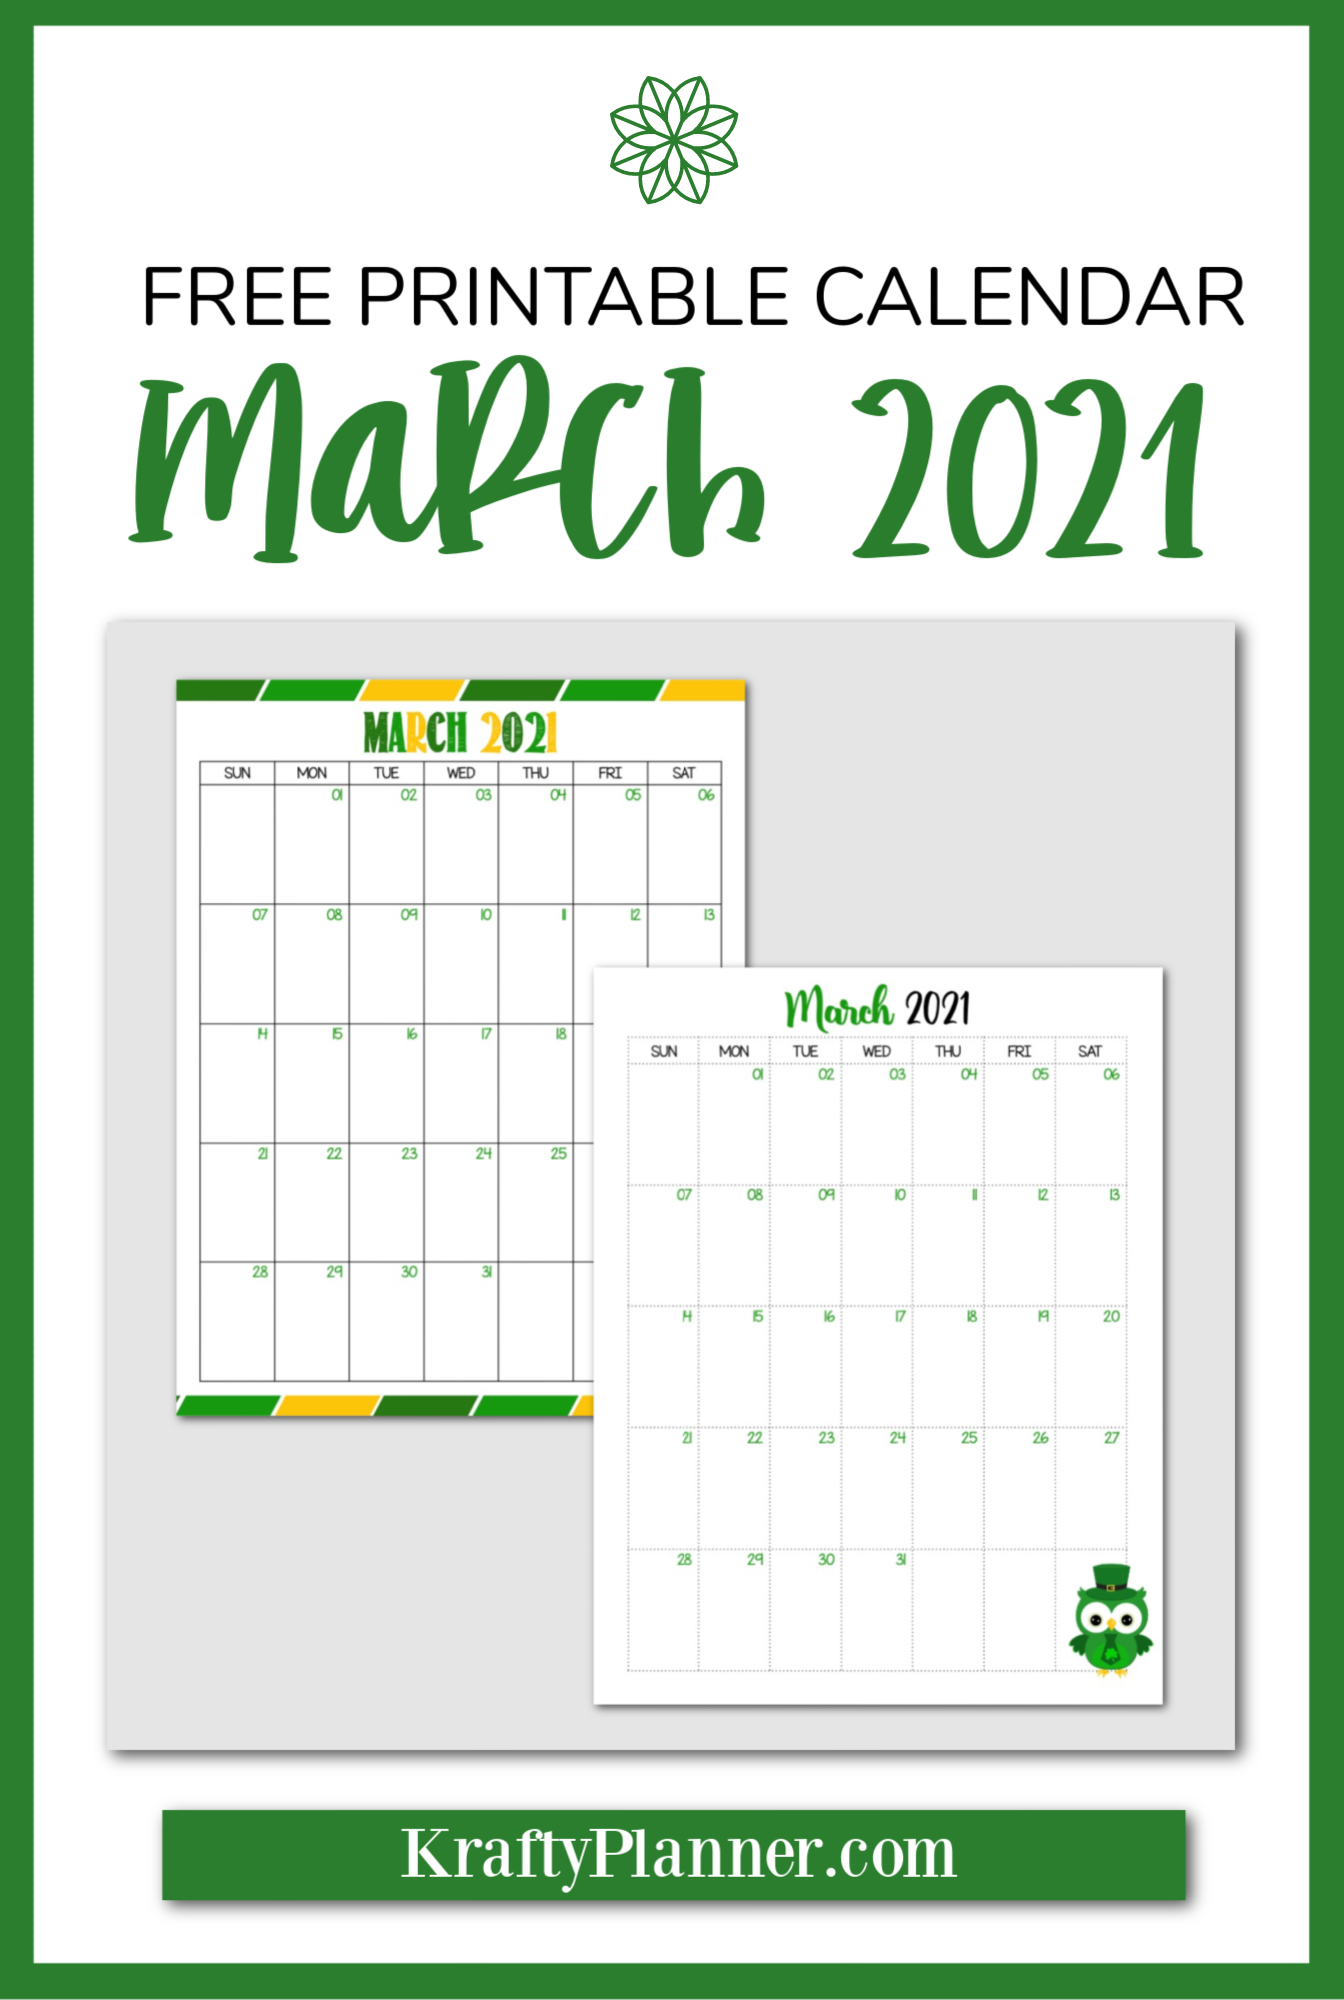 Free Printable March 2021 Calendar PIN 2.png